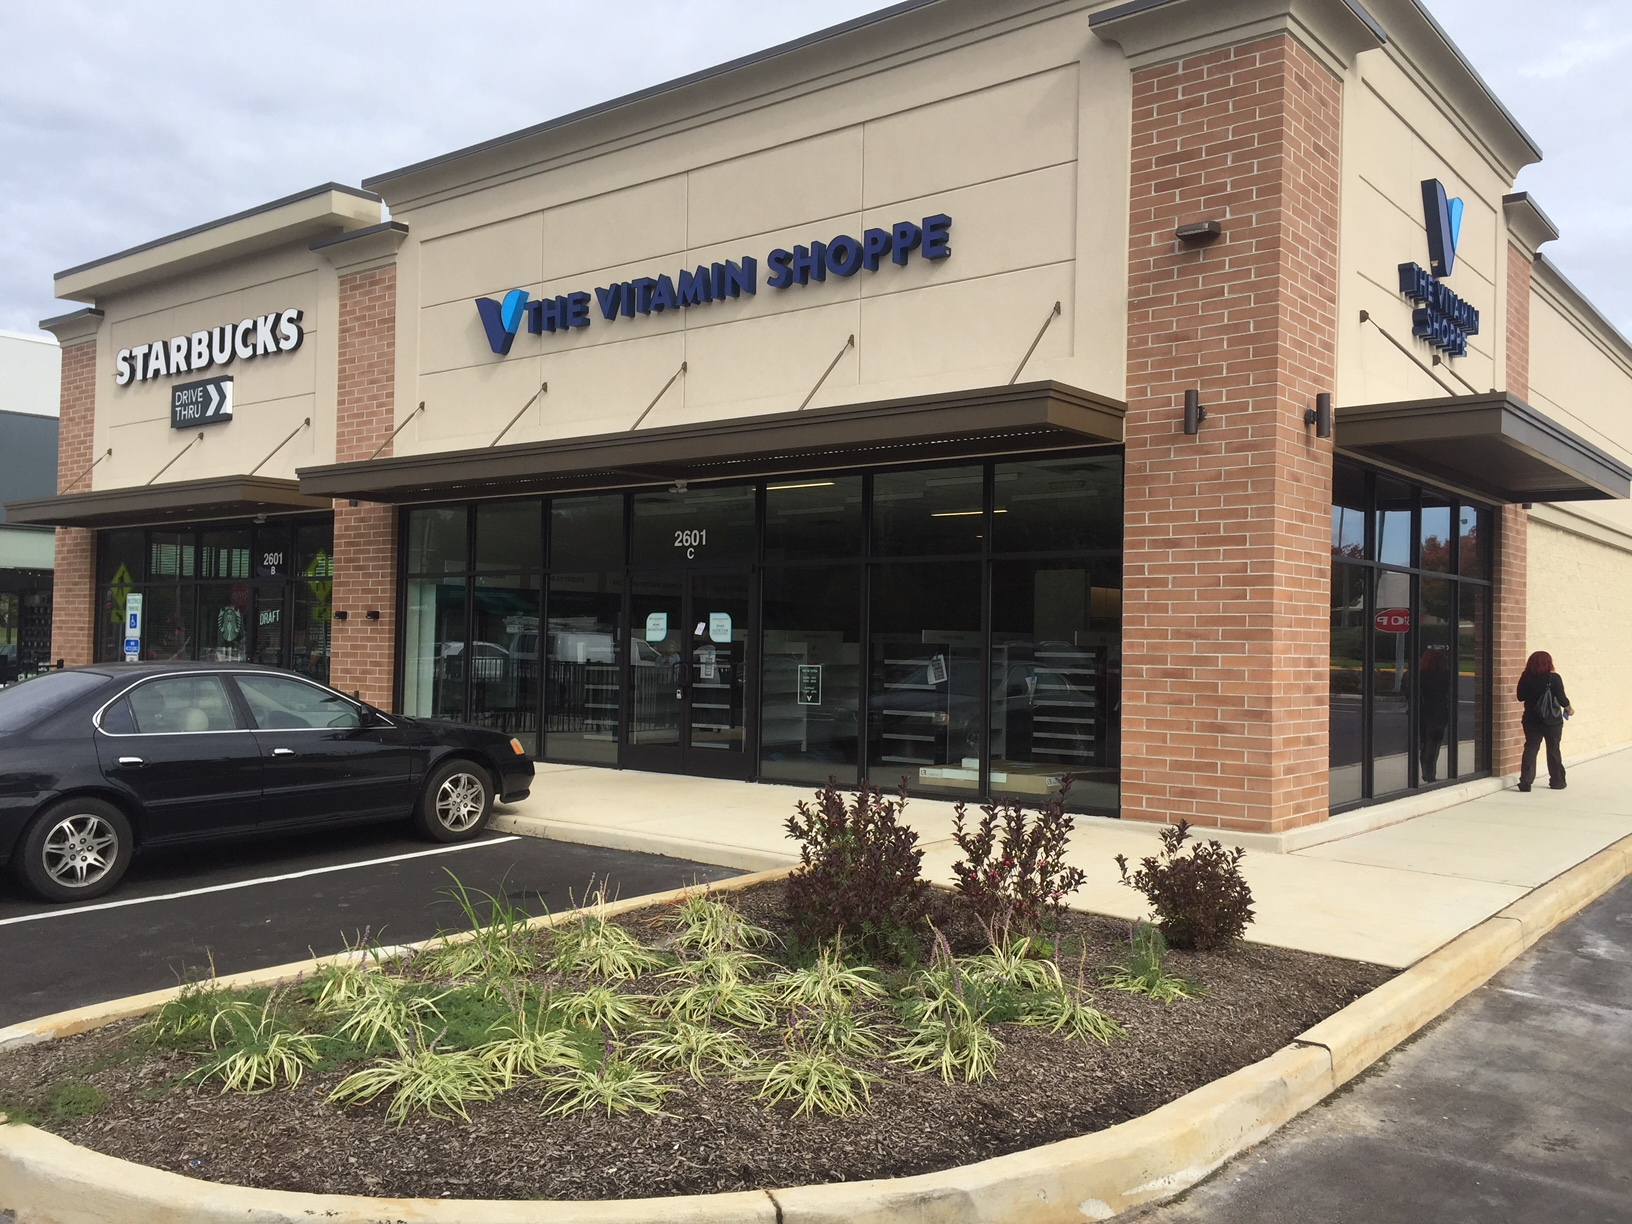 Starbucks & The Vitamin Shoppe - Burlington, New Jersey